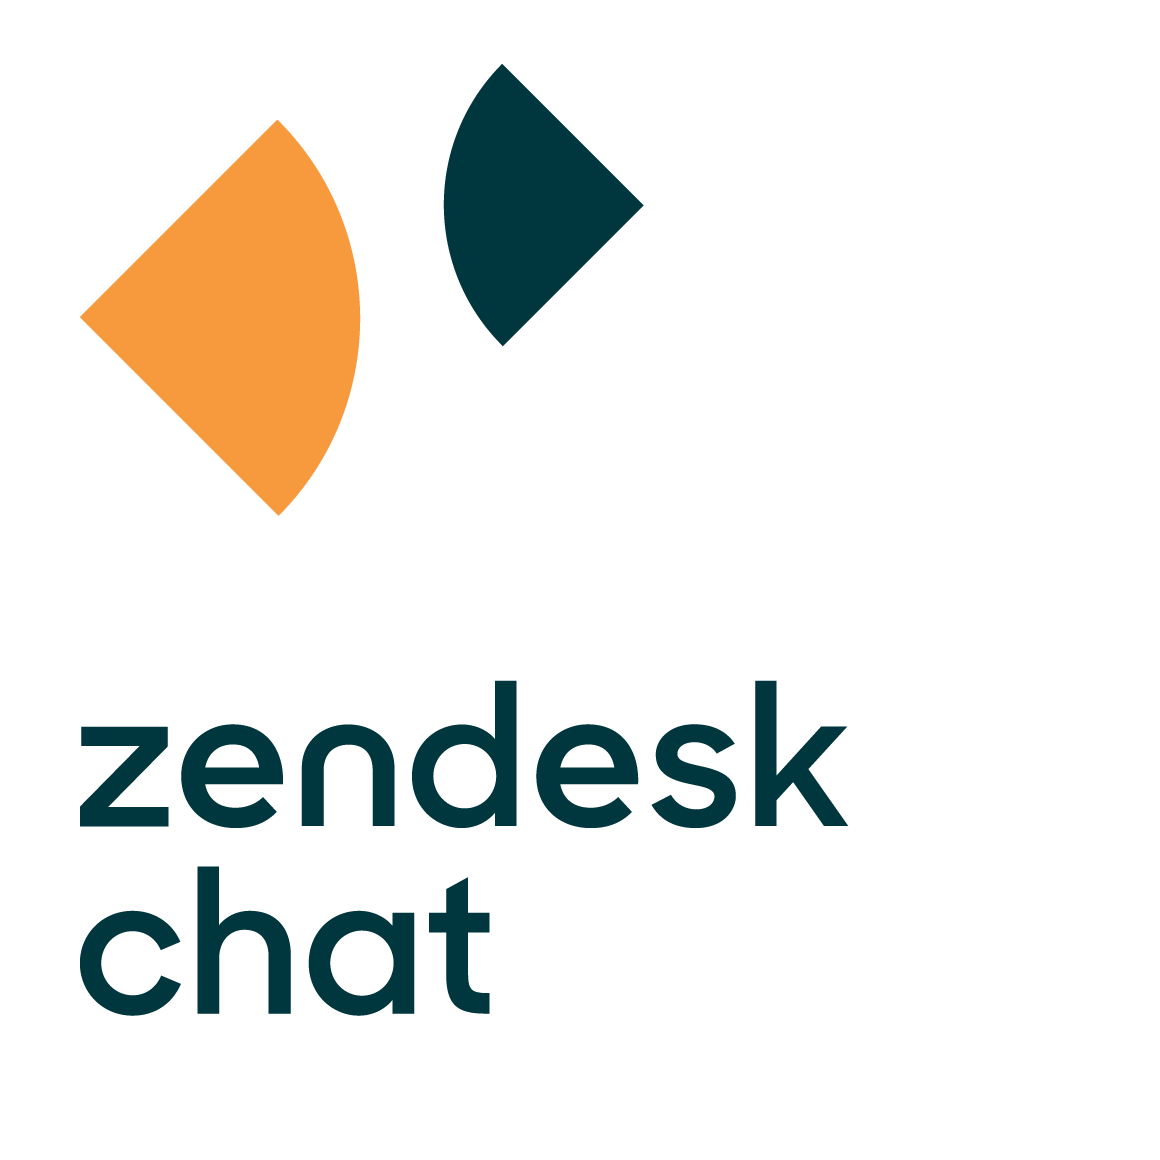 Zendesk Chat Technographics